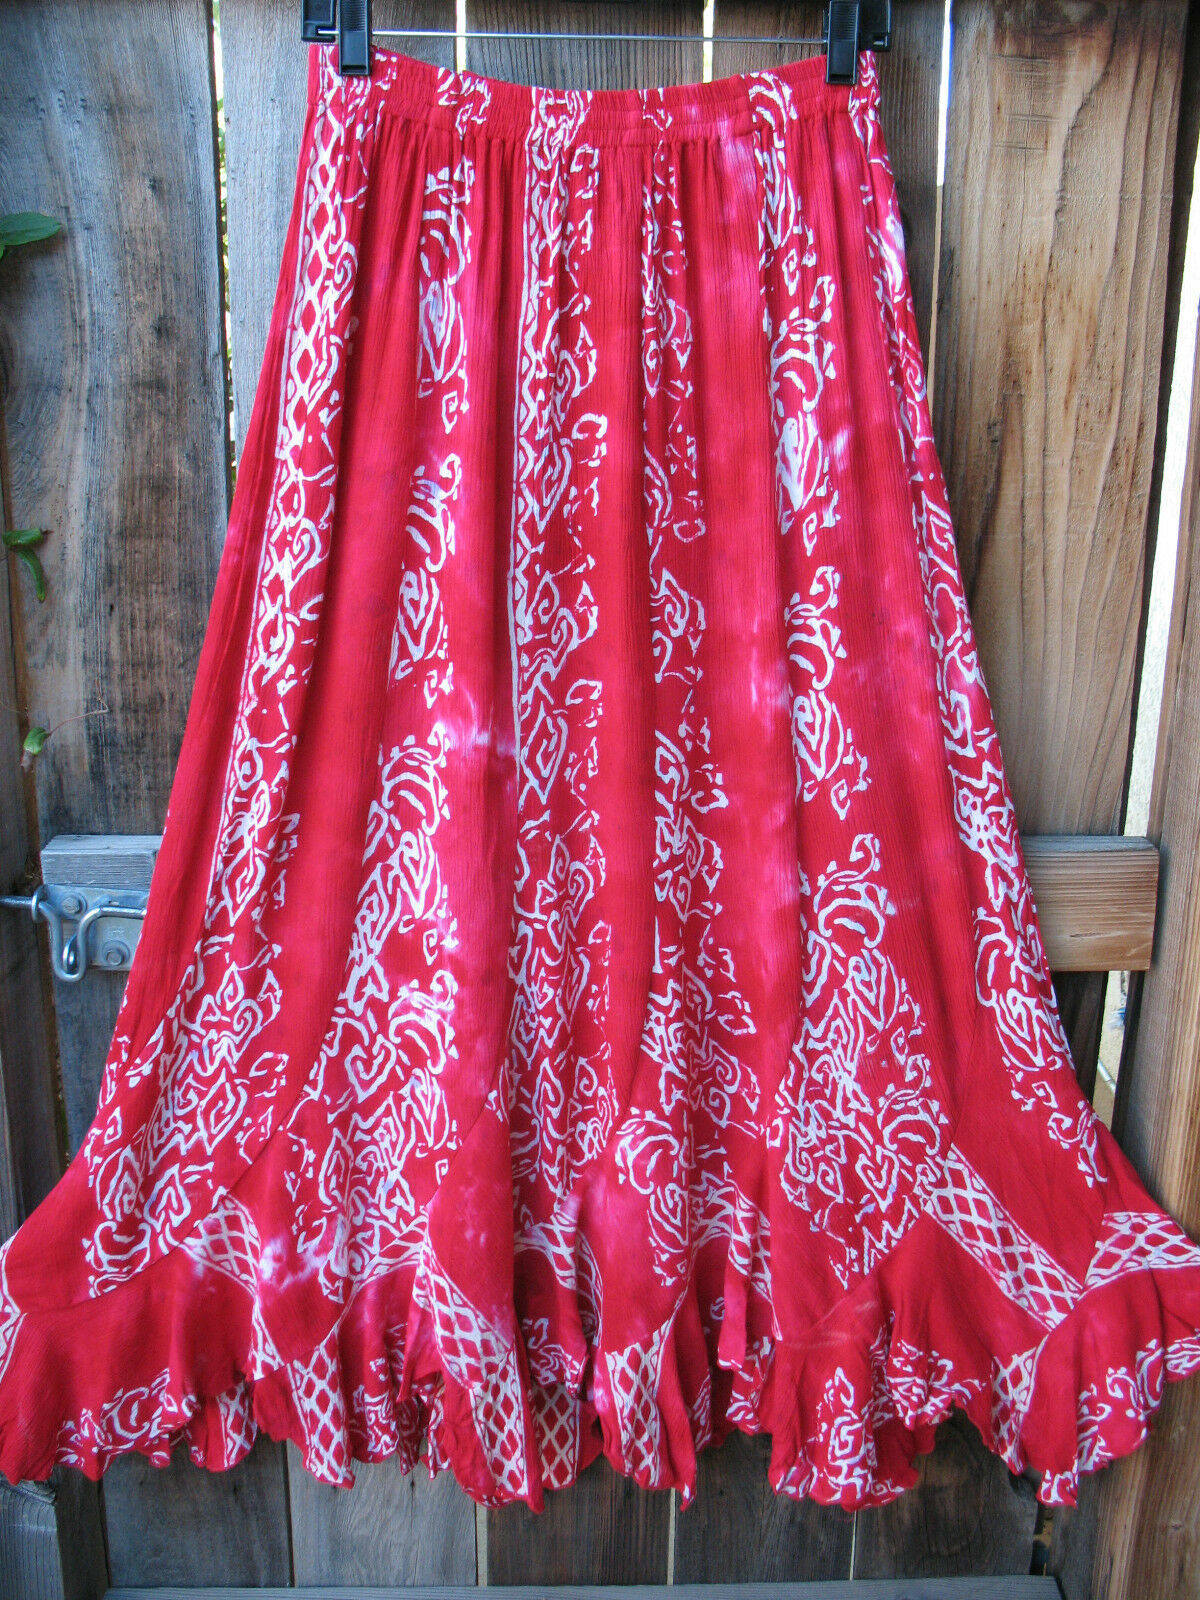 ART TO WEAR MISSION CANYON FLIRTY 30 SKIRT IN ALL NEW RUBY RED, OS, NWT